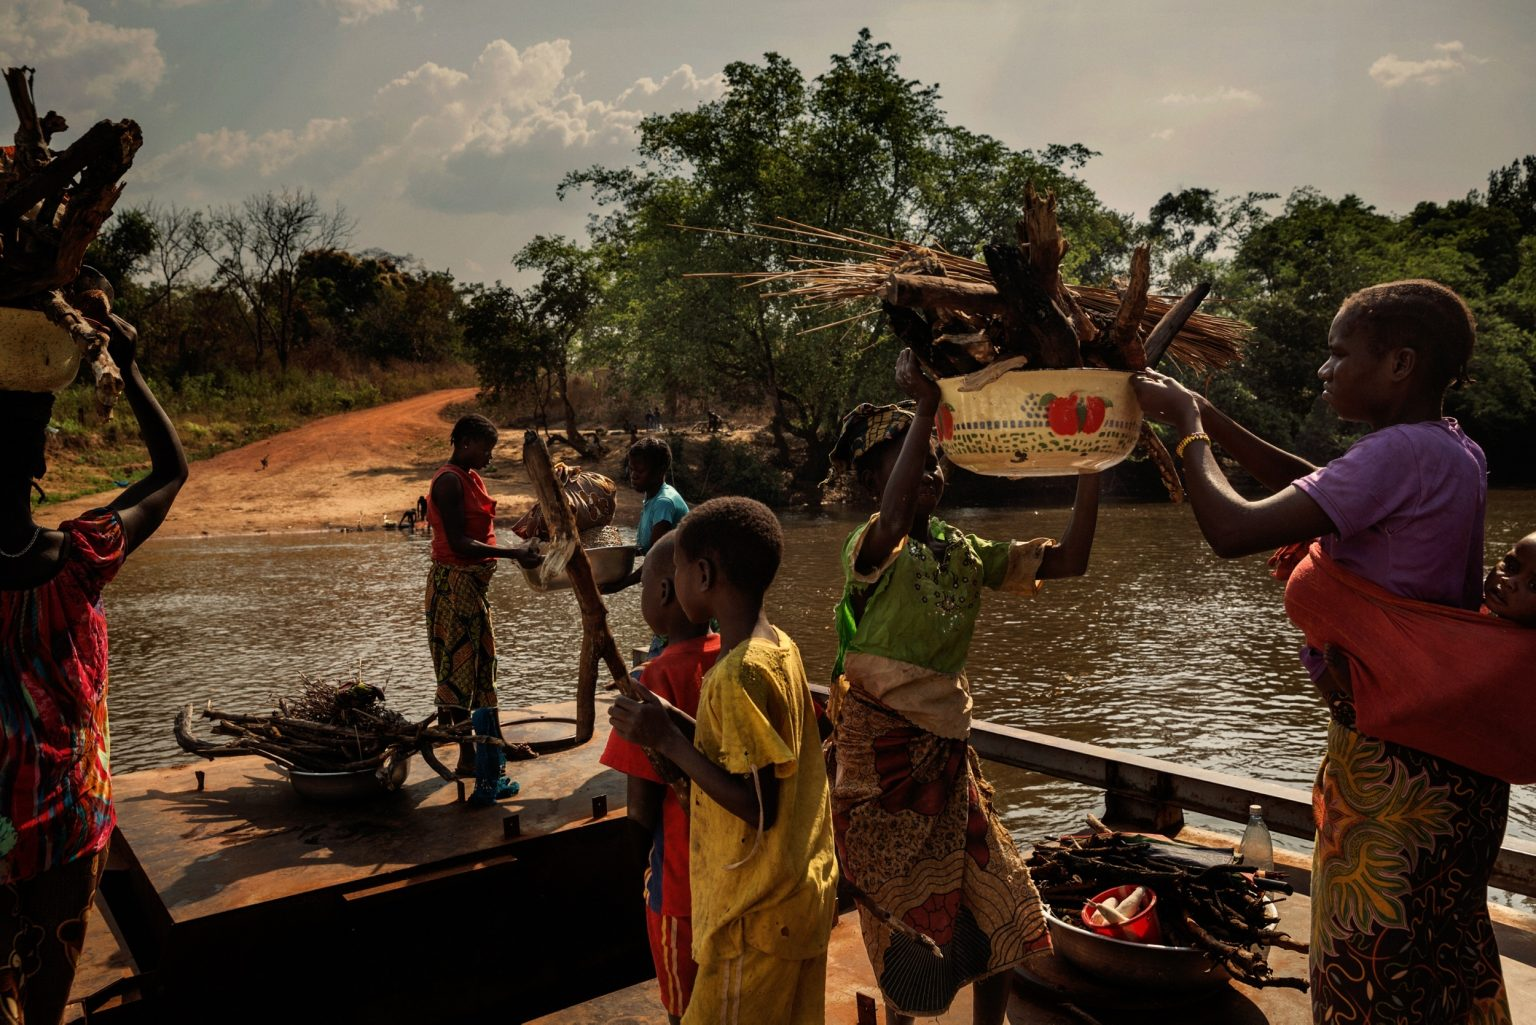 consequence-central-african-republic-two-years-on-from-the-out-6